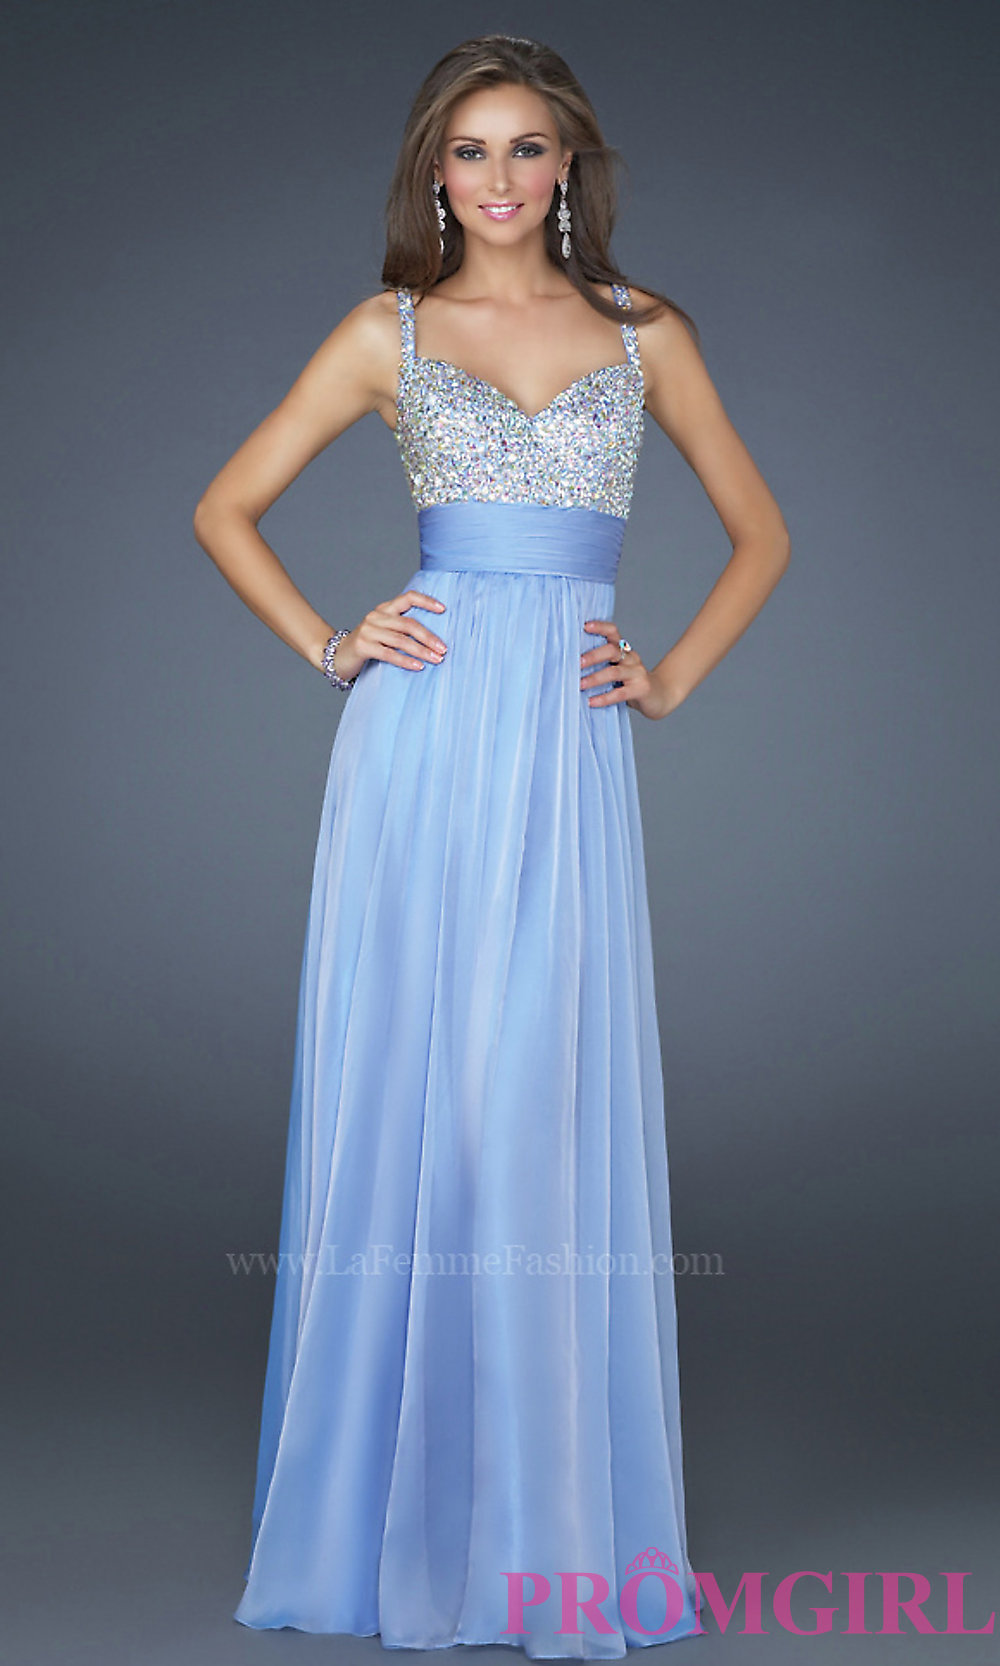 Periwinkle Blue Prom Dress